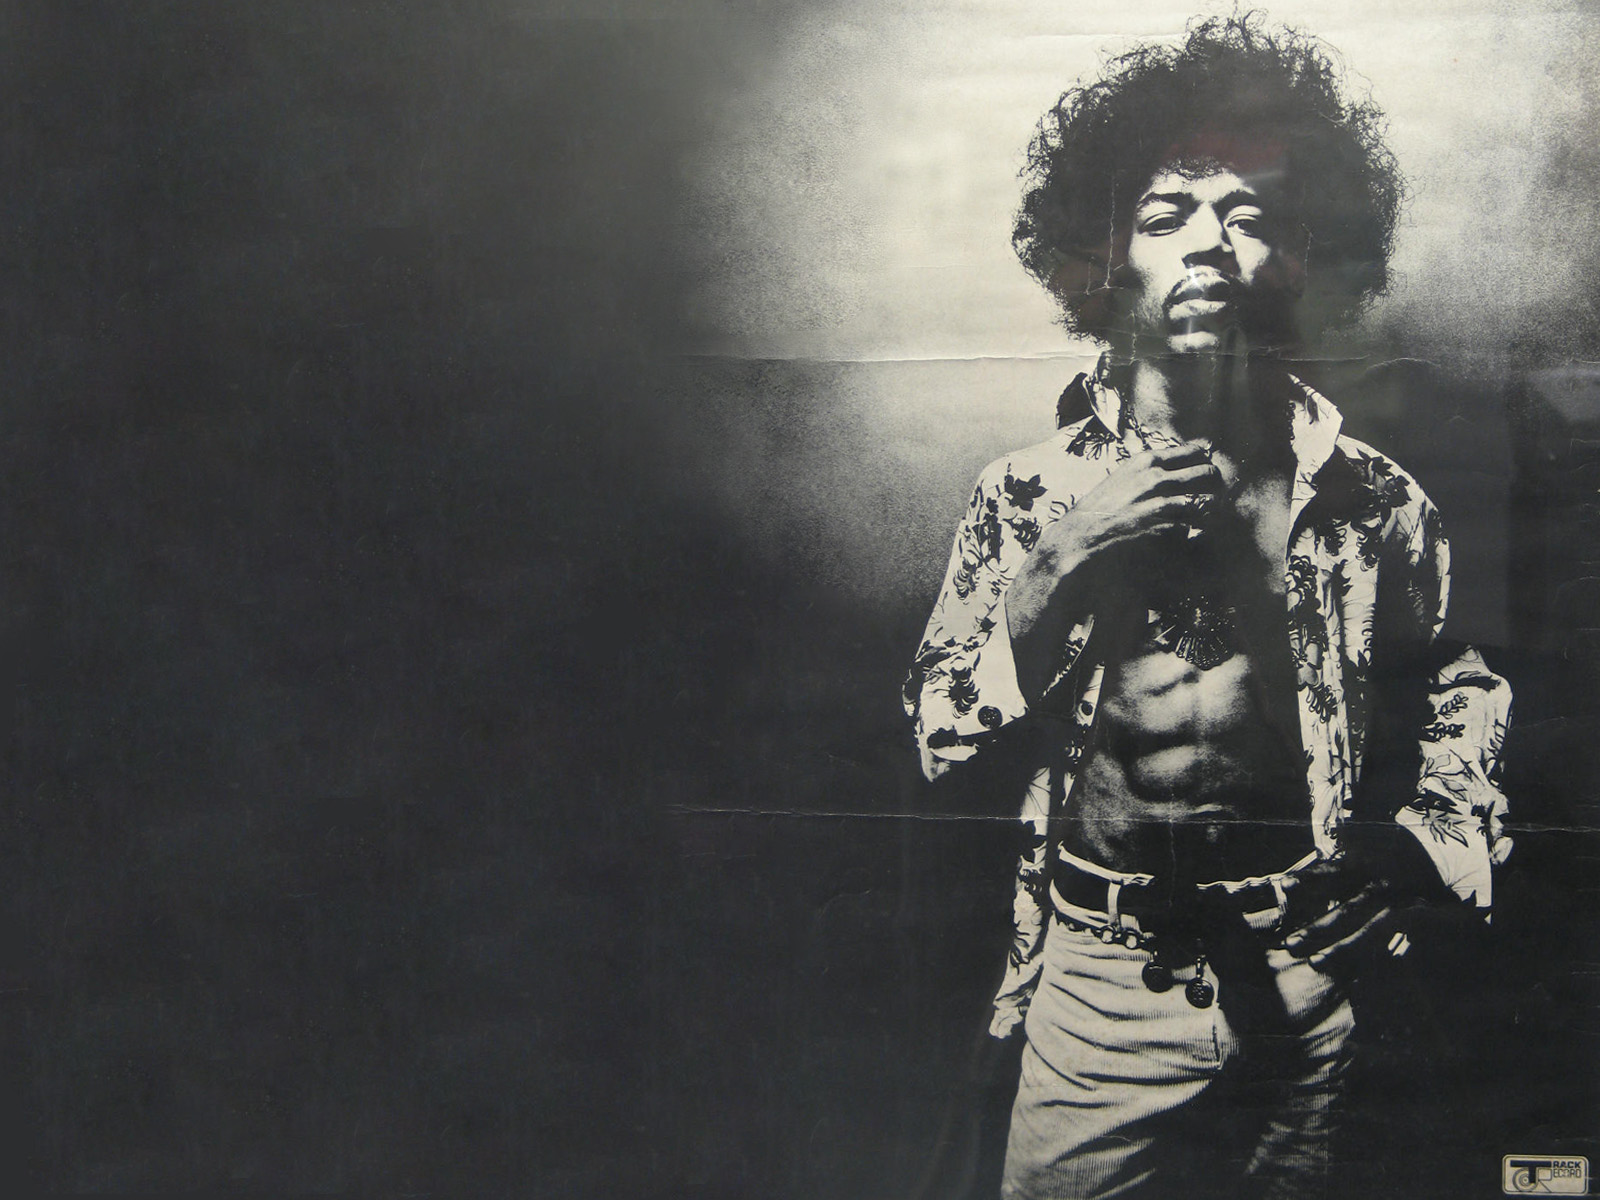 Jimi hendrix wallpaper and background image 1600x1200 id172617 music jimi hendrix wallpaper altavistaventures Images